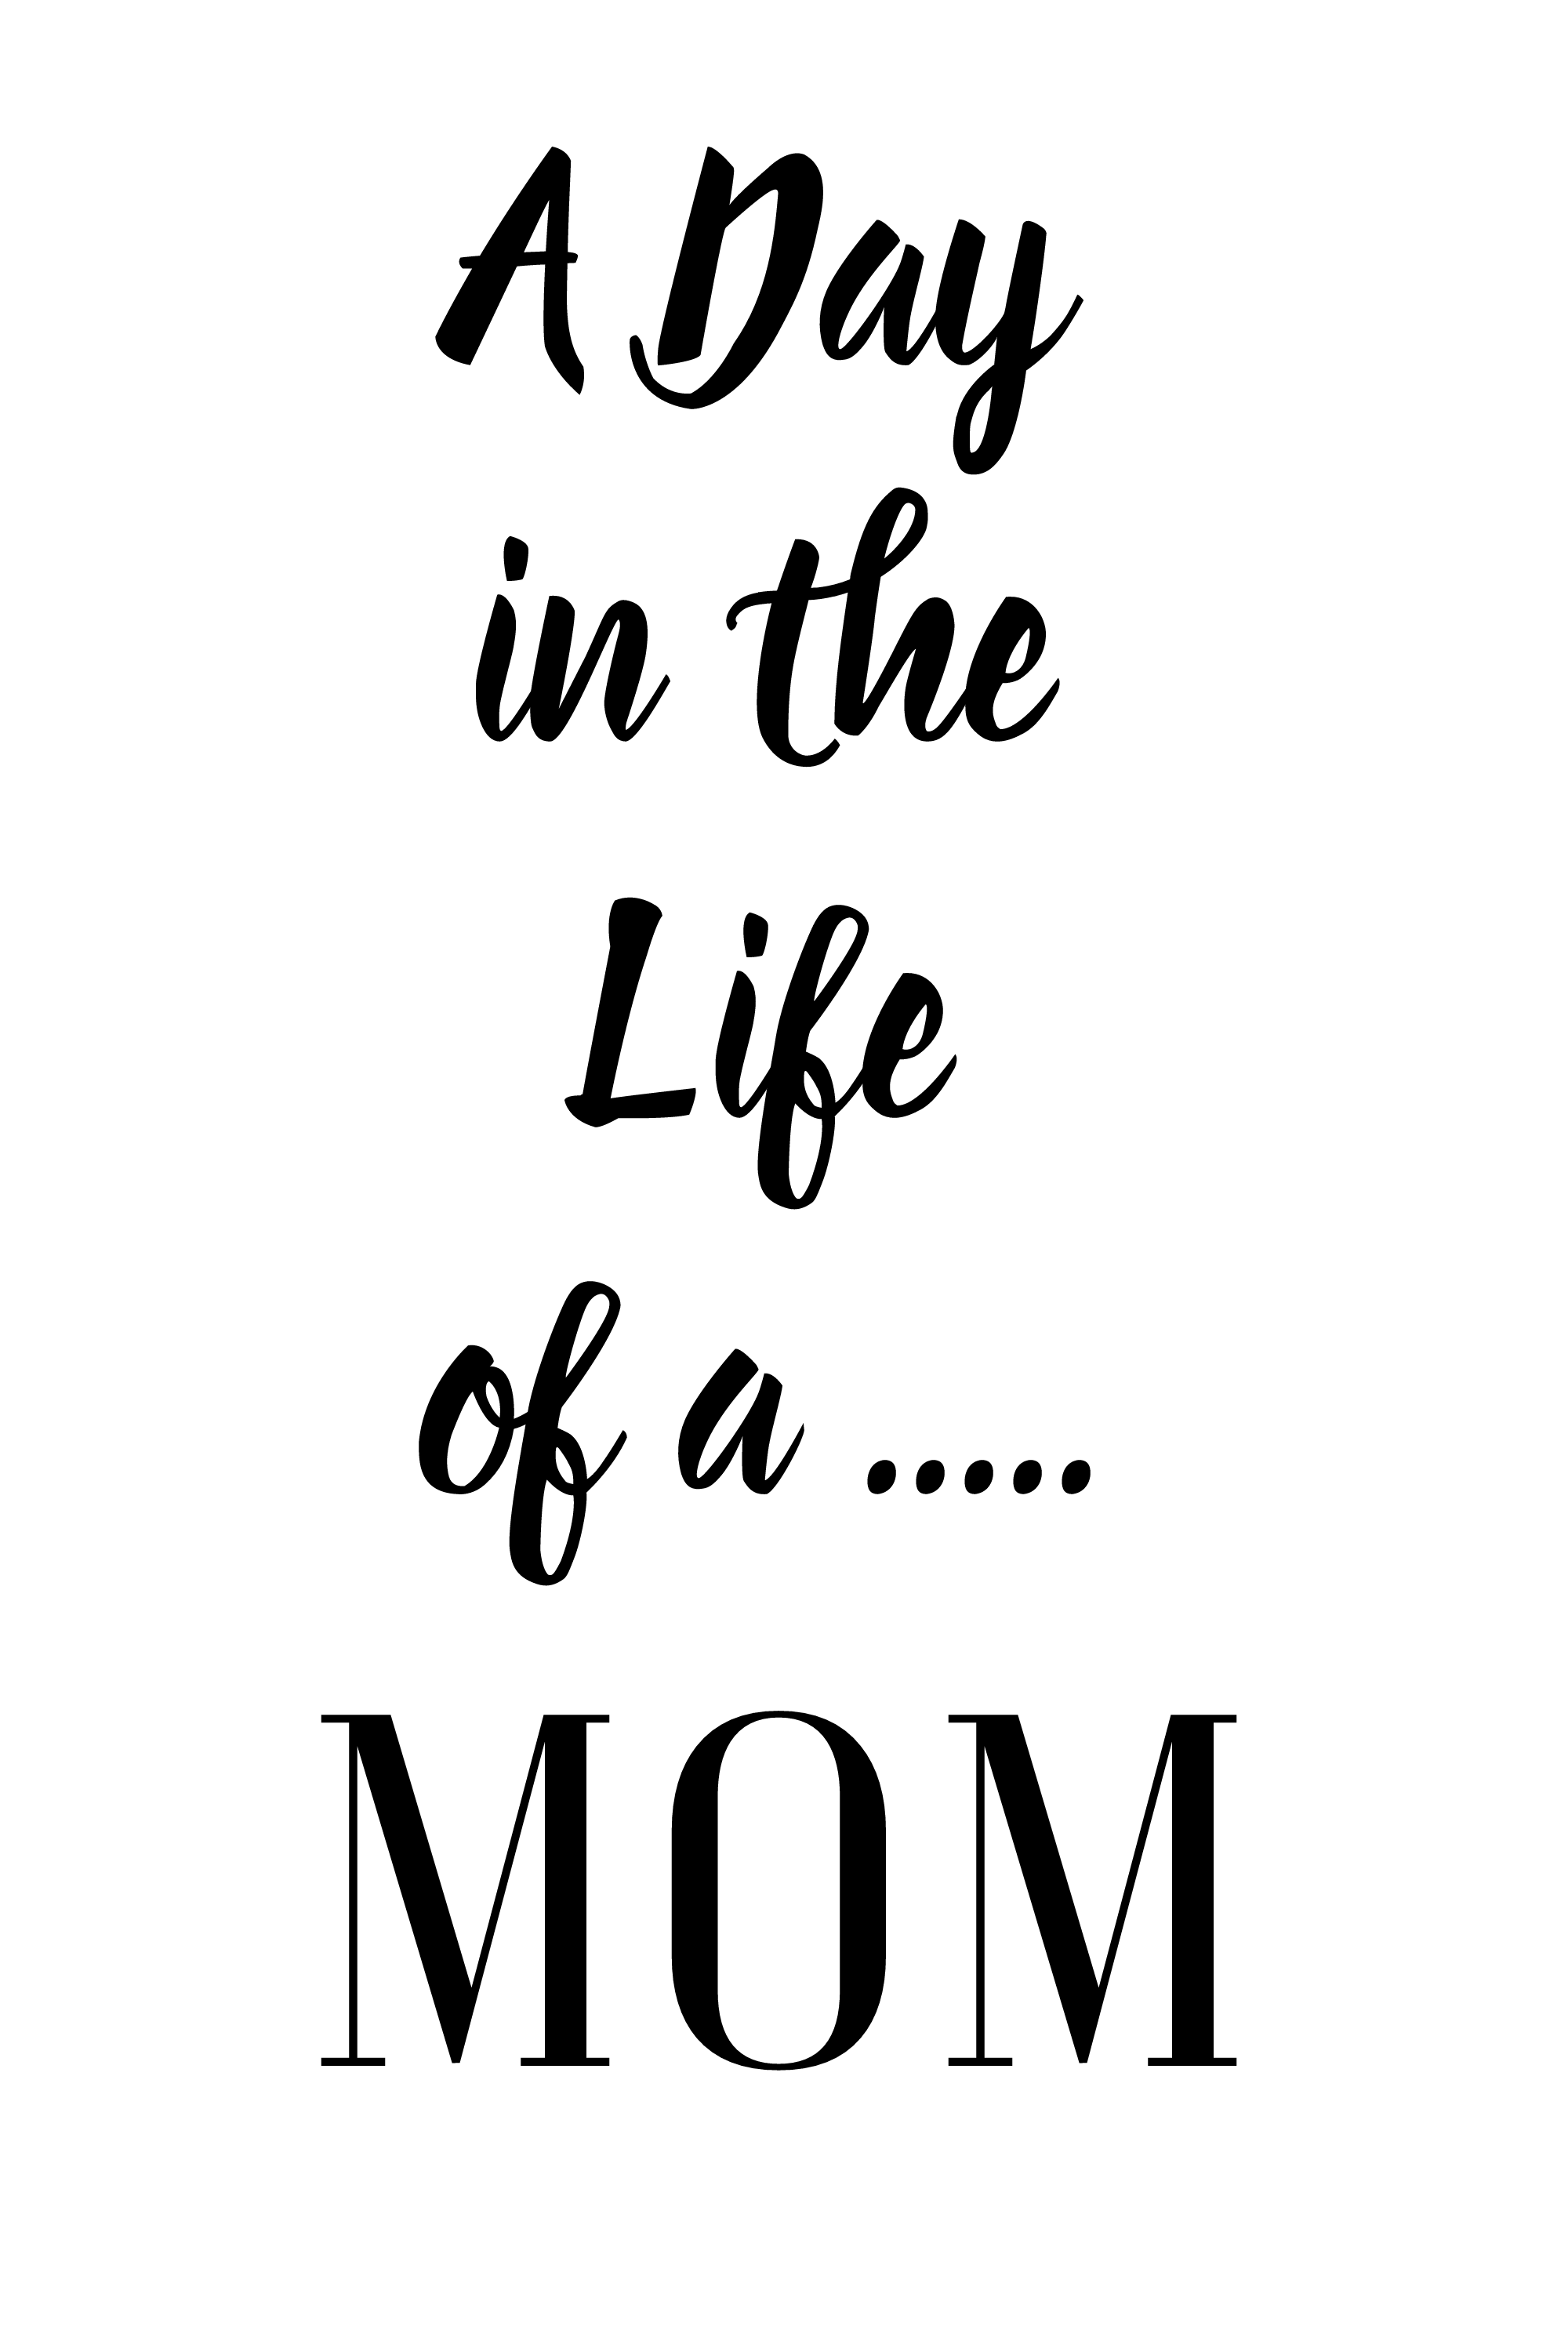 Mom life png. A day in the